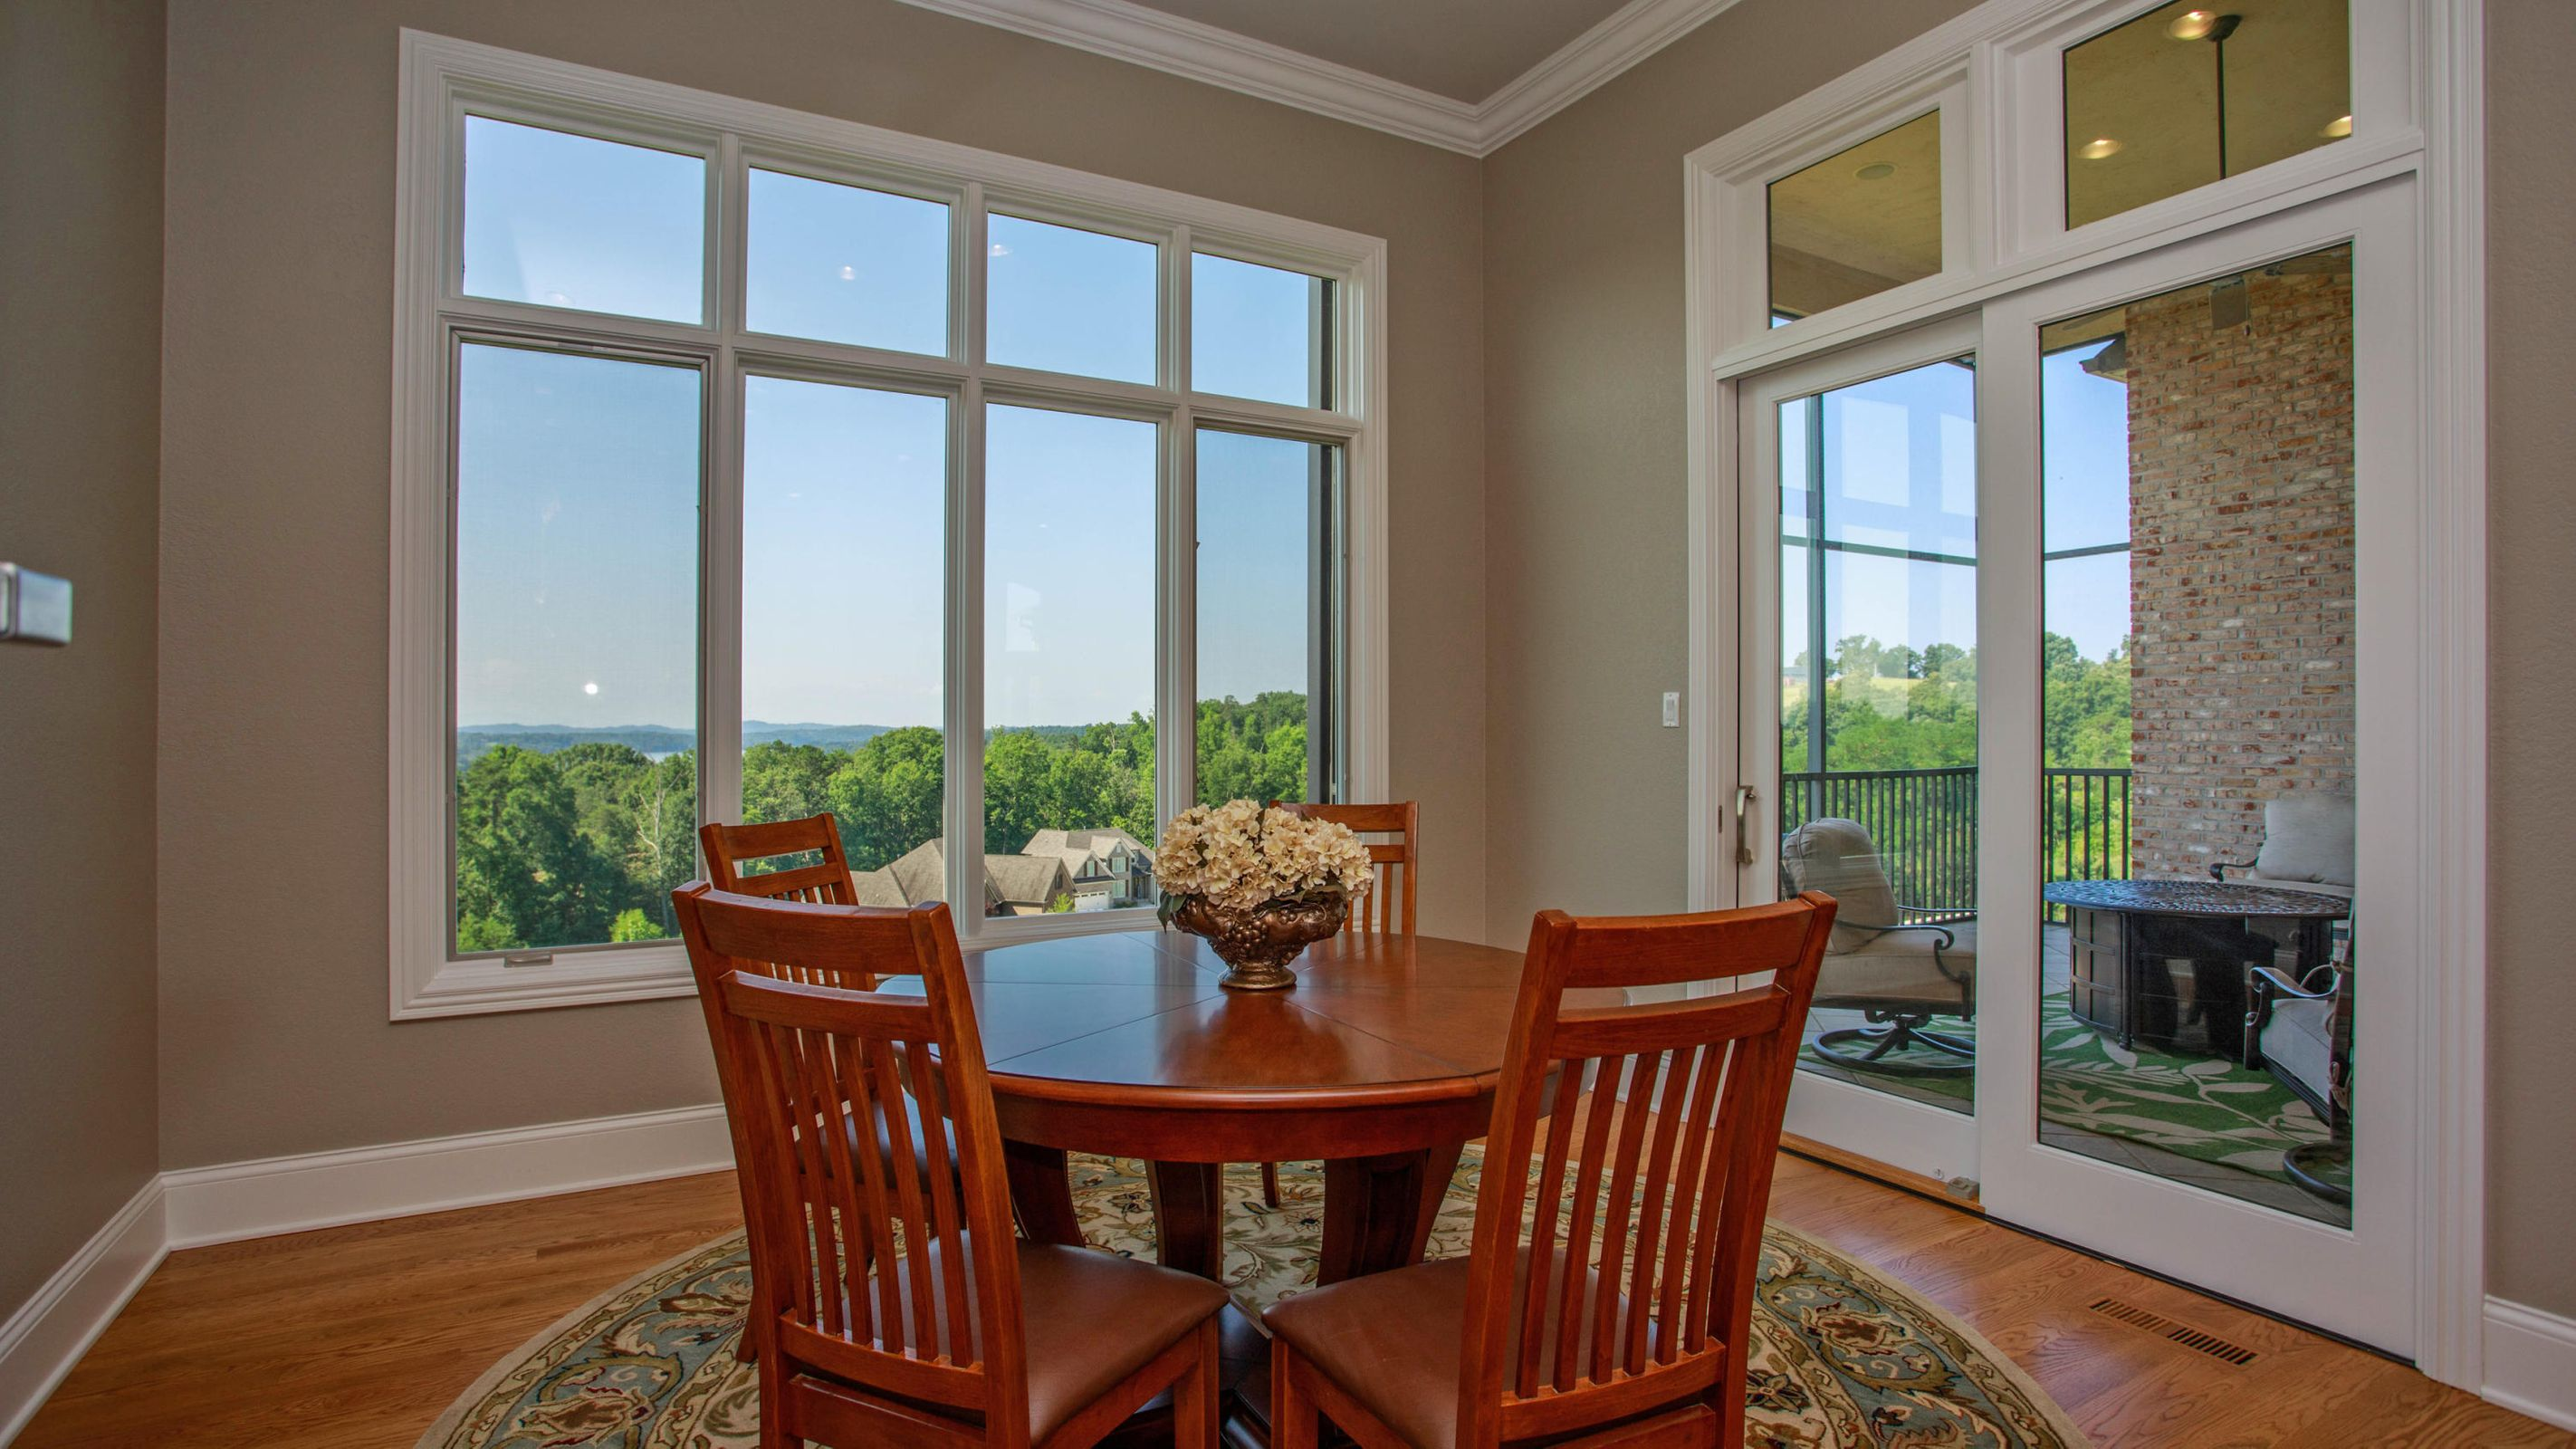 Breakfast room off kitchen with view